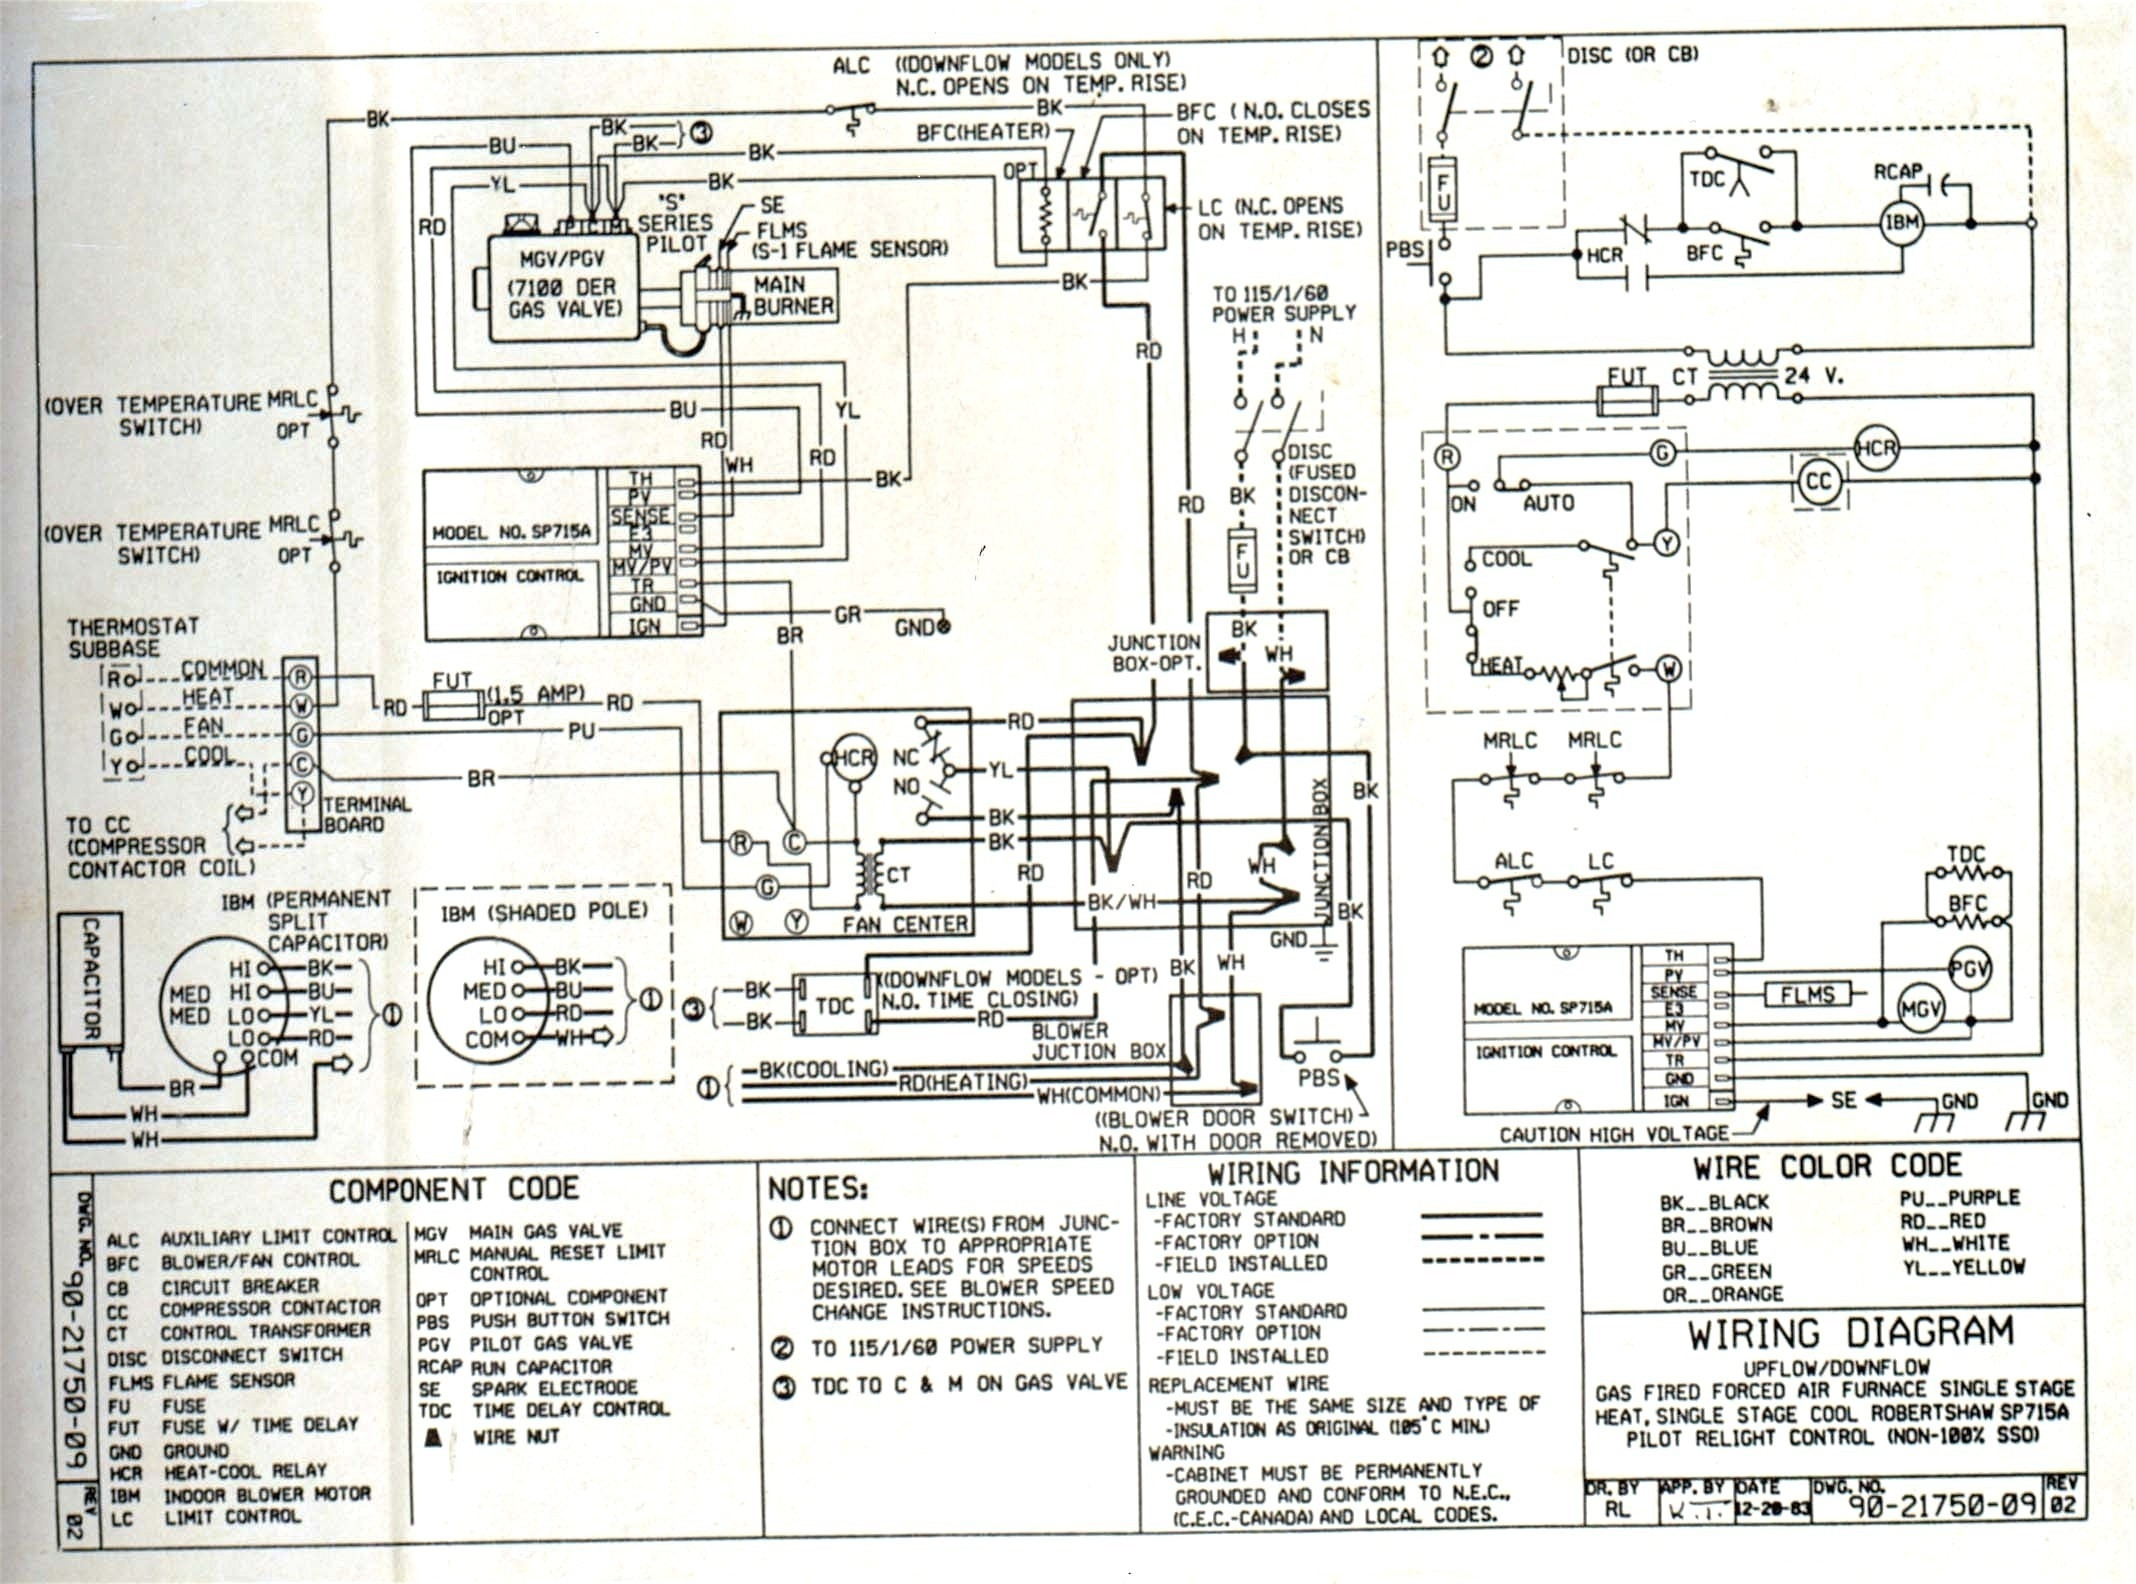 carrier air conditioner wiring diagram Collection-carrier ac wiring diagram Collection Wiring Diagram Ac Split Sanyo Fresh Wiring Diagram Indoor Ac 17-m